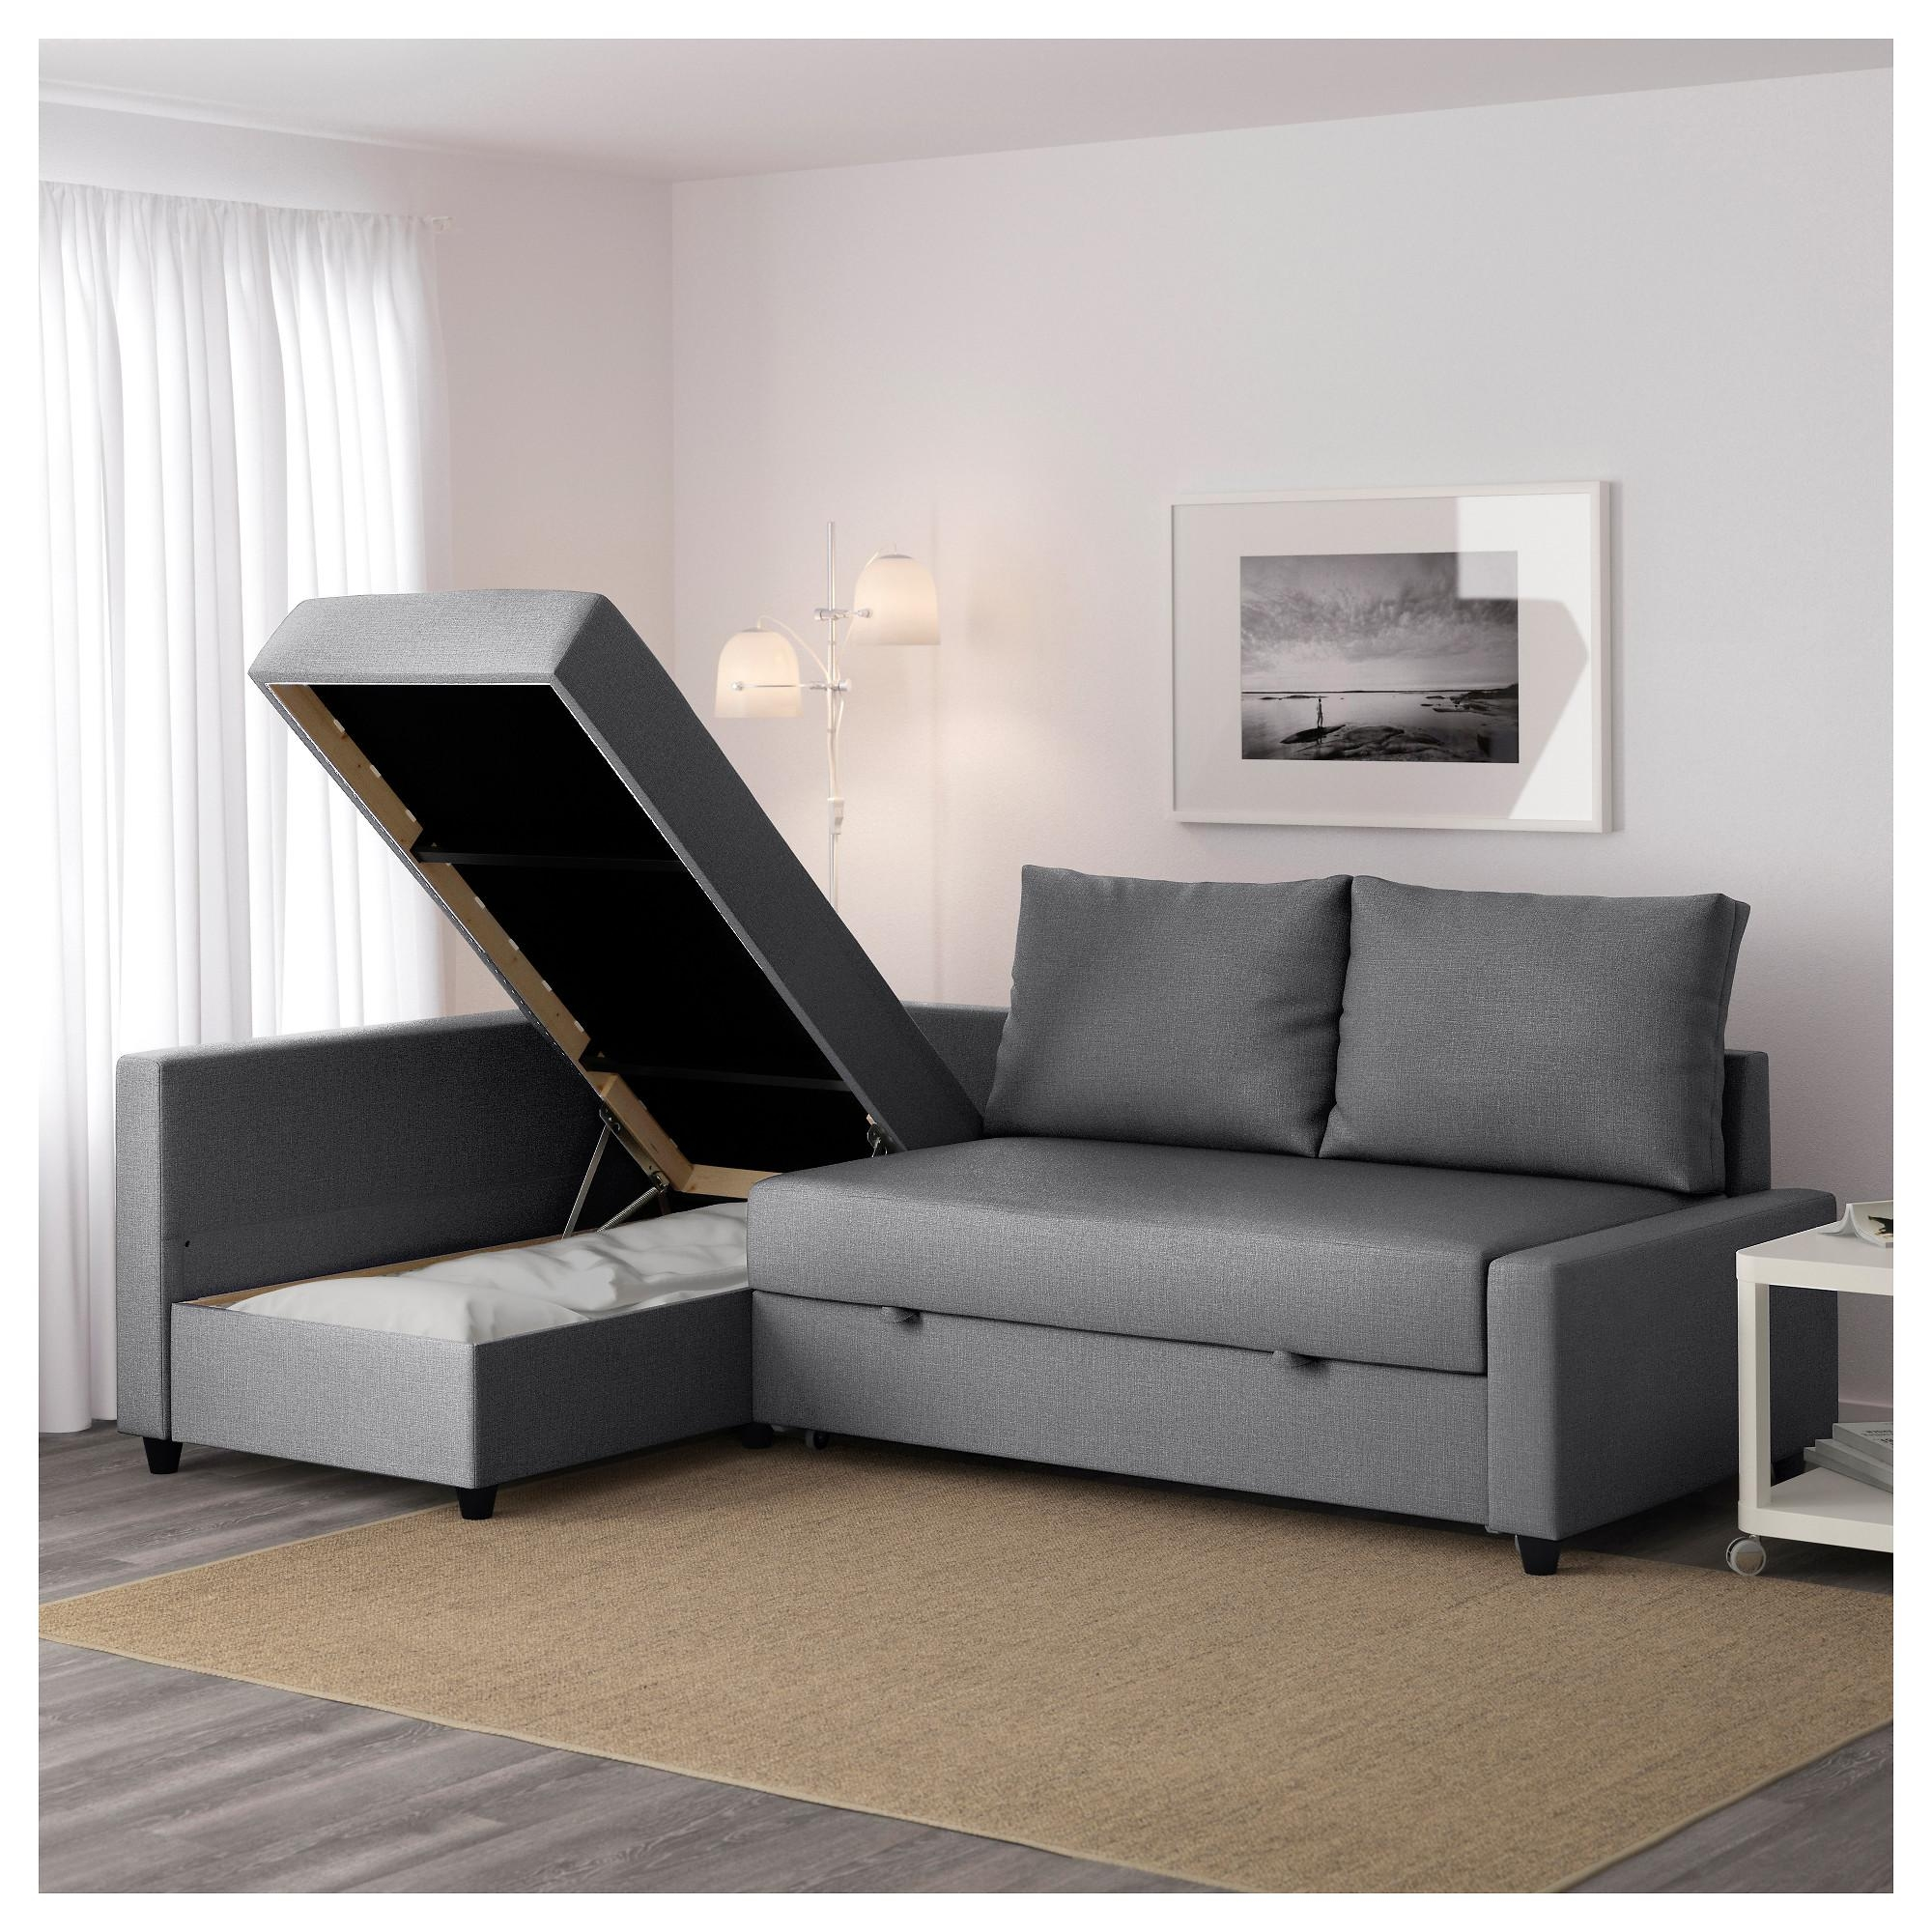 Sofas Center : Corner Sofa Beds Uk Cheap For Small Rooms Ikea With For Cheap Corner Sofas (Image 17 of 20)